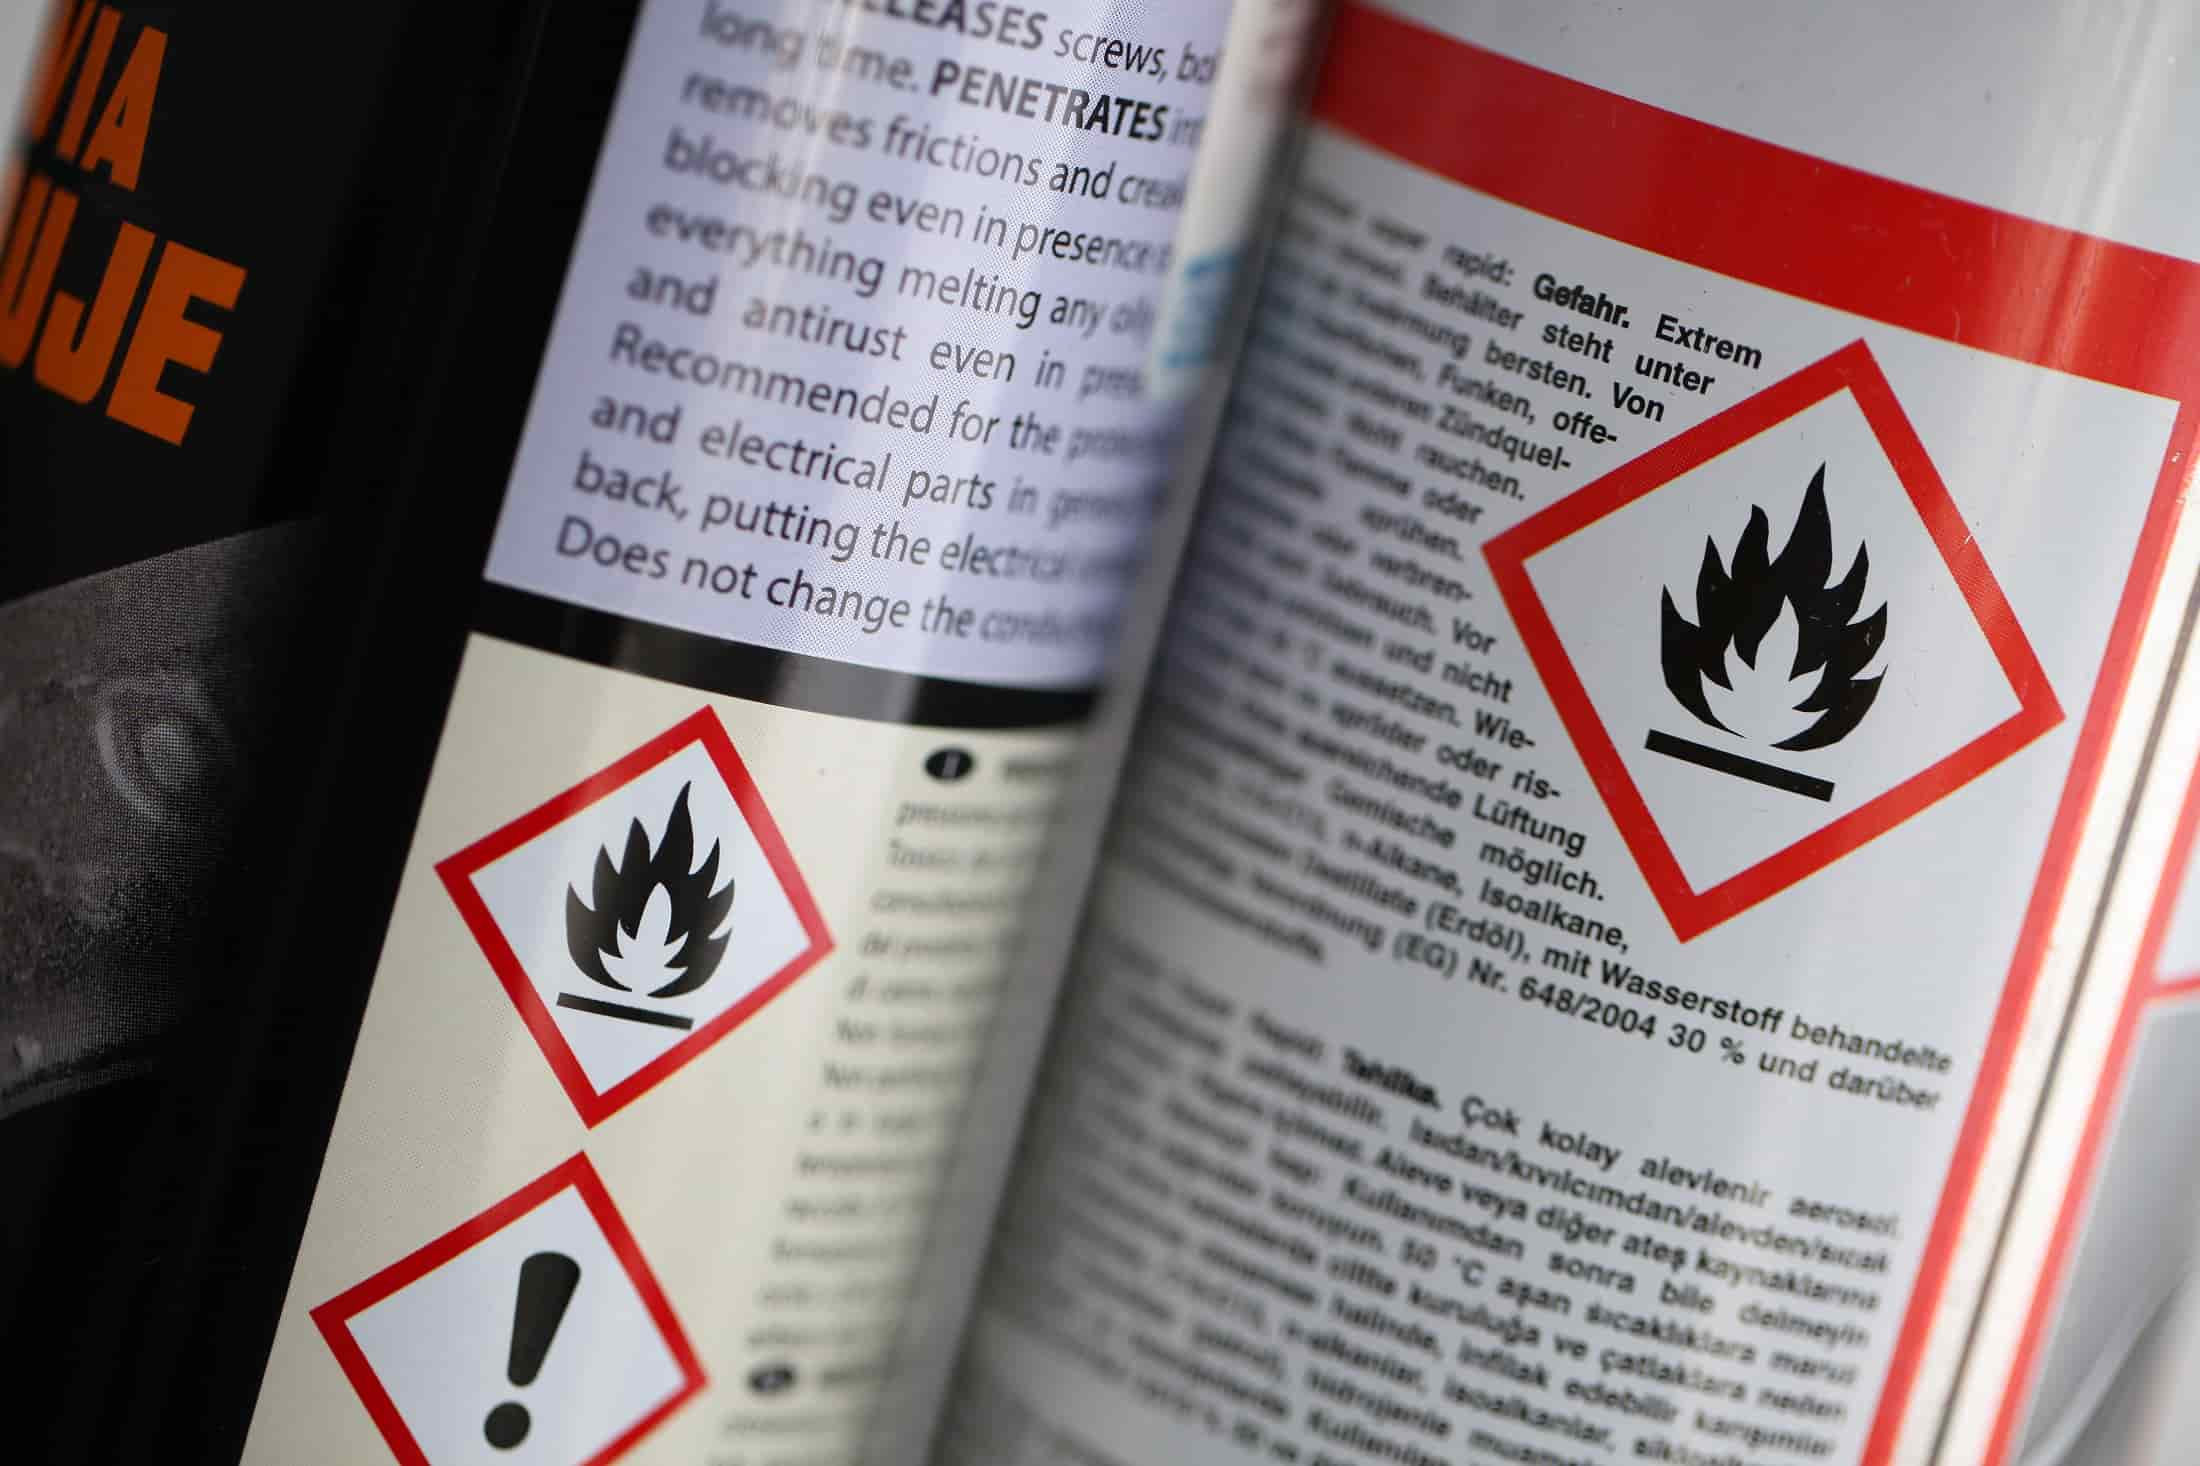 Storing flammable liquids, PPE, and Safety Data Sheets